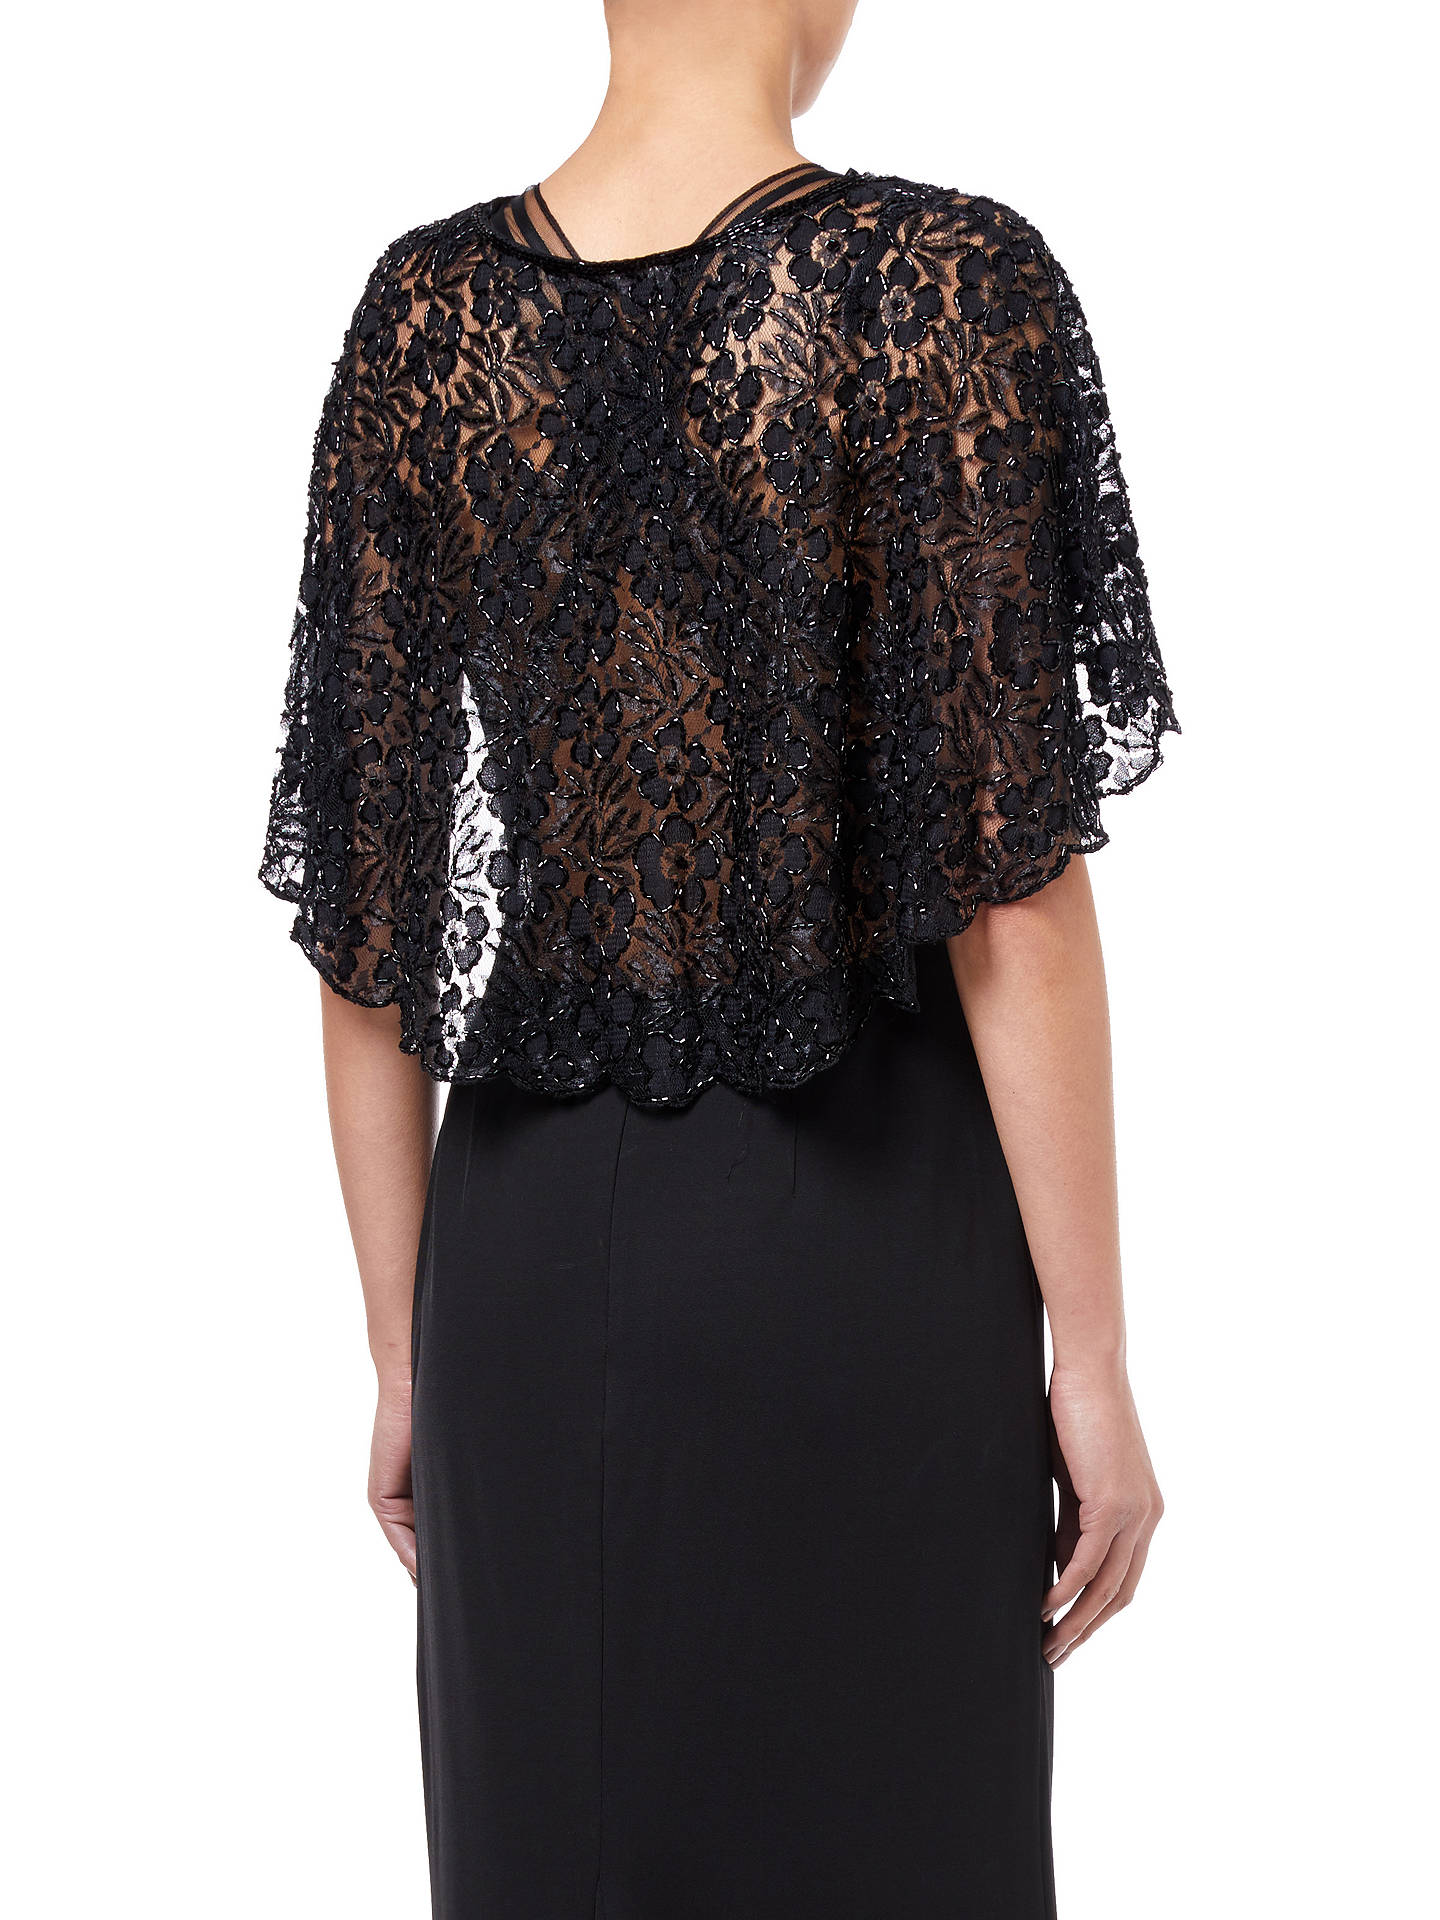 c0ac215ae8 ... Buy Adrianna Papell Bead Lace Cover Up, Black, XS Online at  johnlewis.com ...